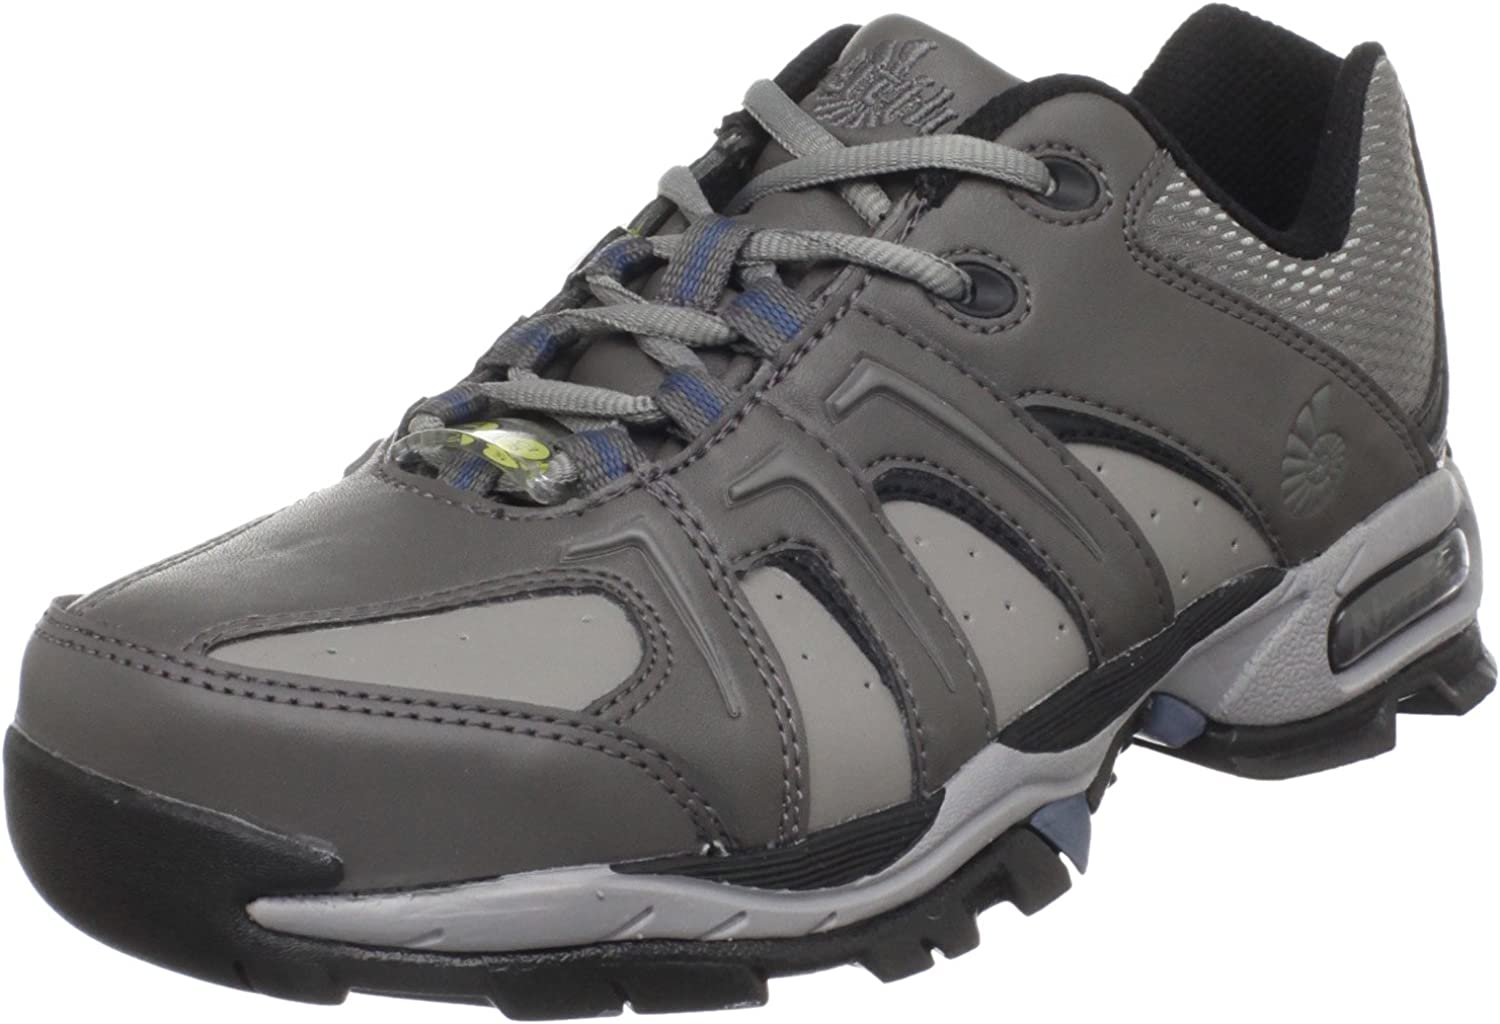 1363 ESD Safety-Toe Sneaker